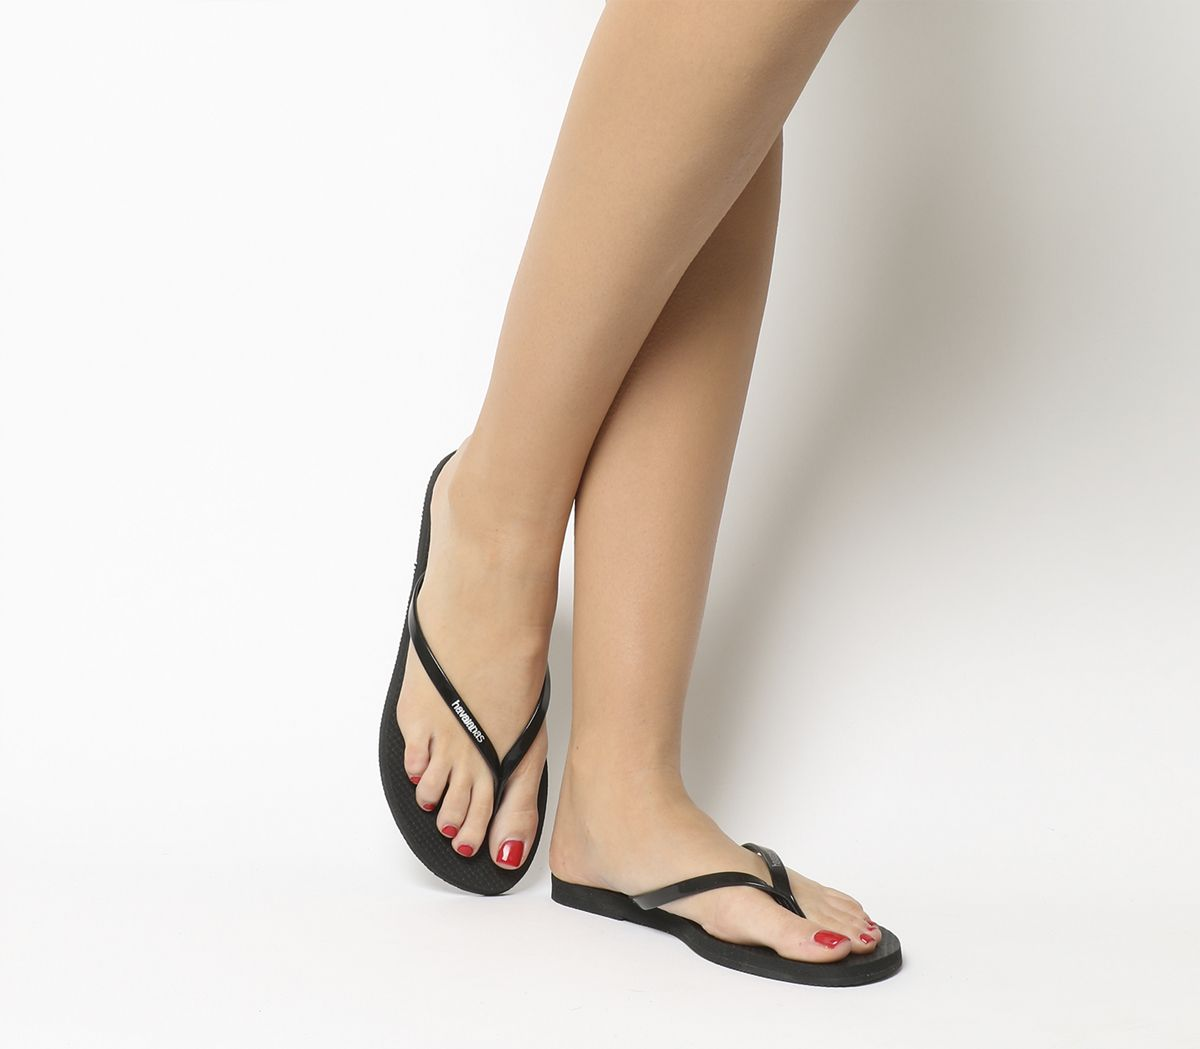 df118cfd750a Havaianas Slim You Metallic Flip Flops Black - Sandals